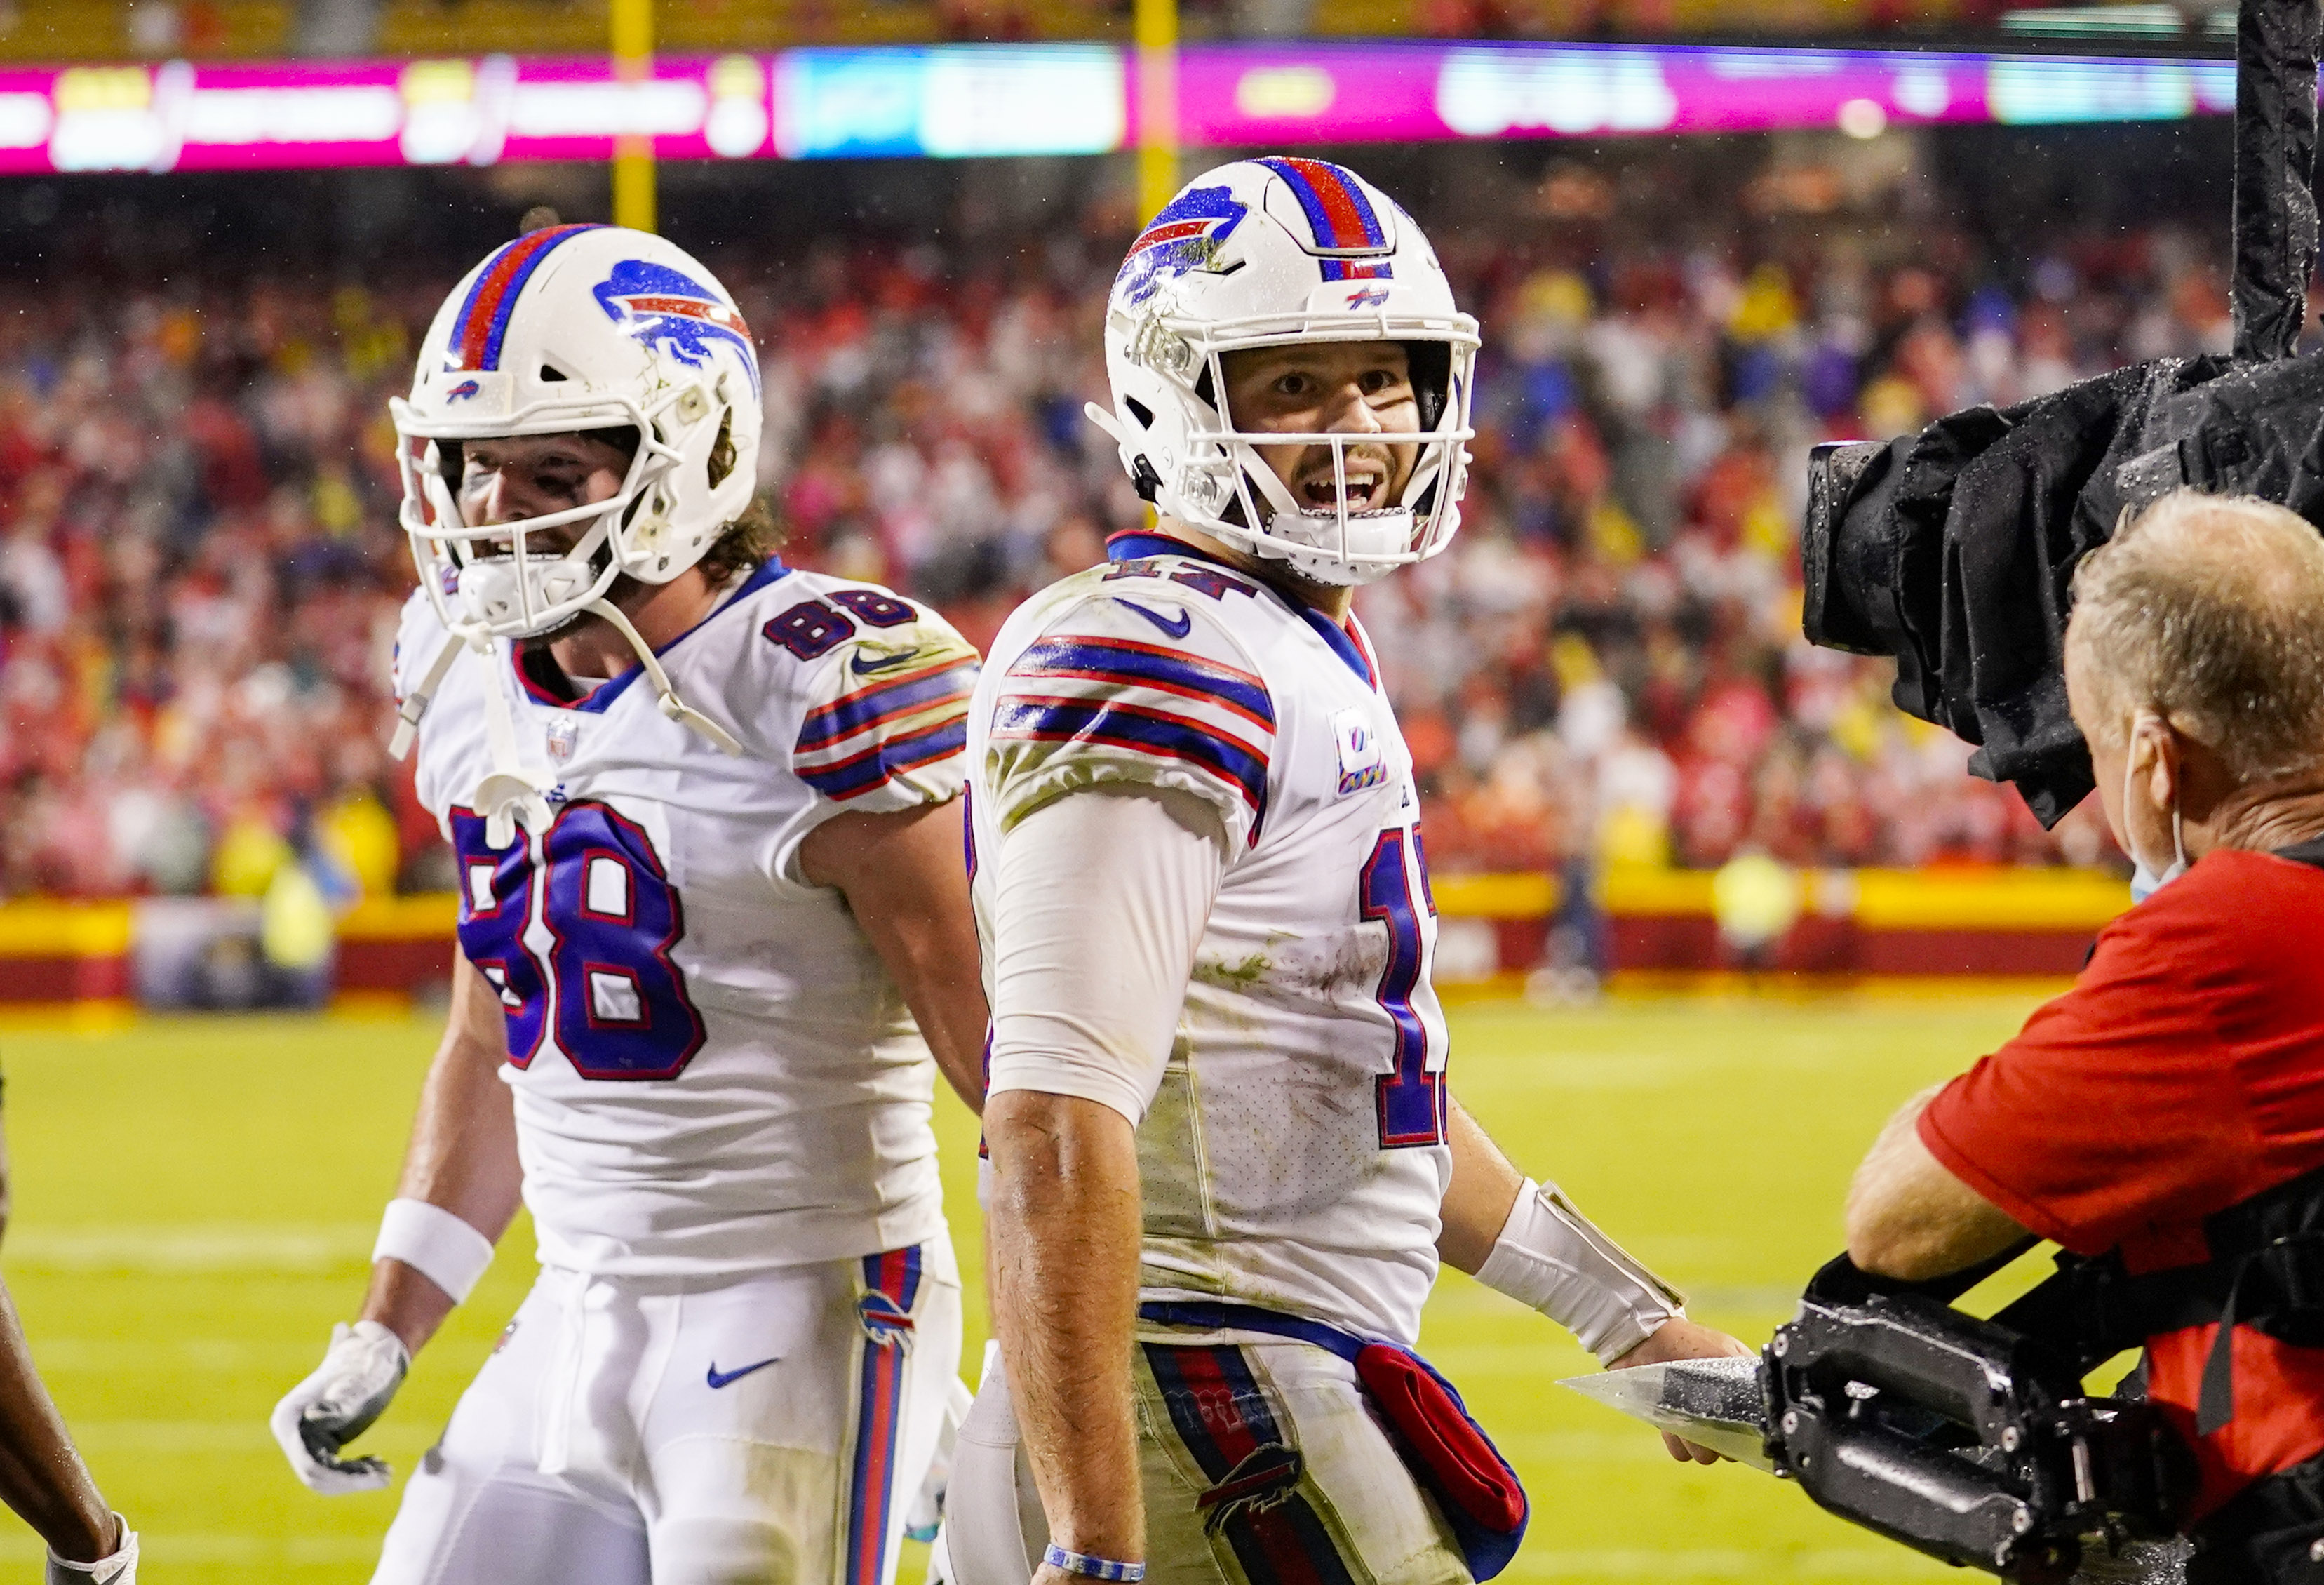 Buffalo Bills quarterback Josh Allen (17) and tight end Dawson Knox (88) celebrate after a touchdown against the Kansas City Chiefs during the second half at GEHA Field at Arrowhead Stadium.